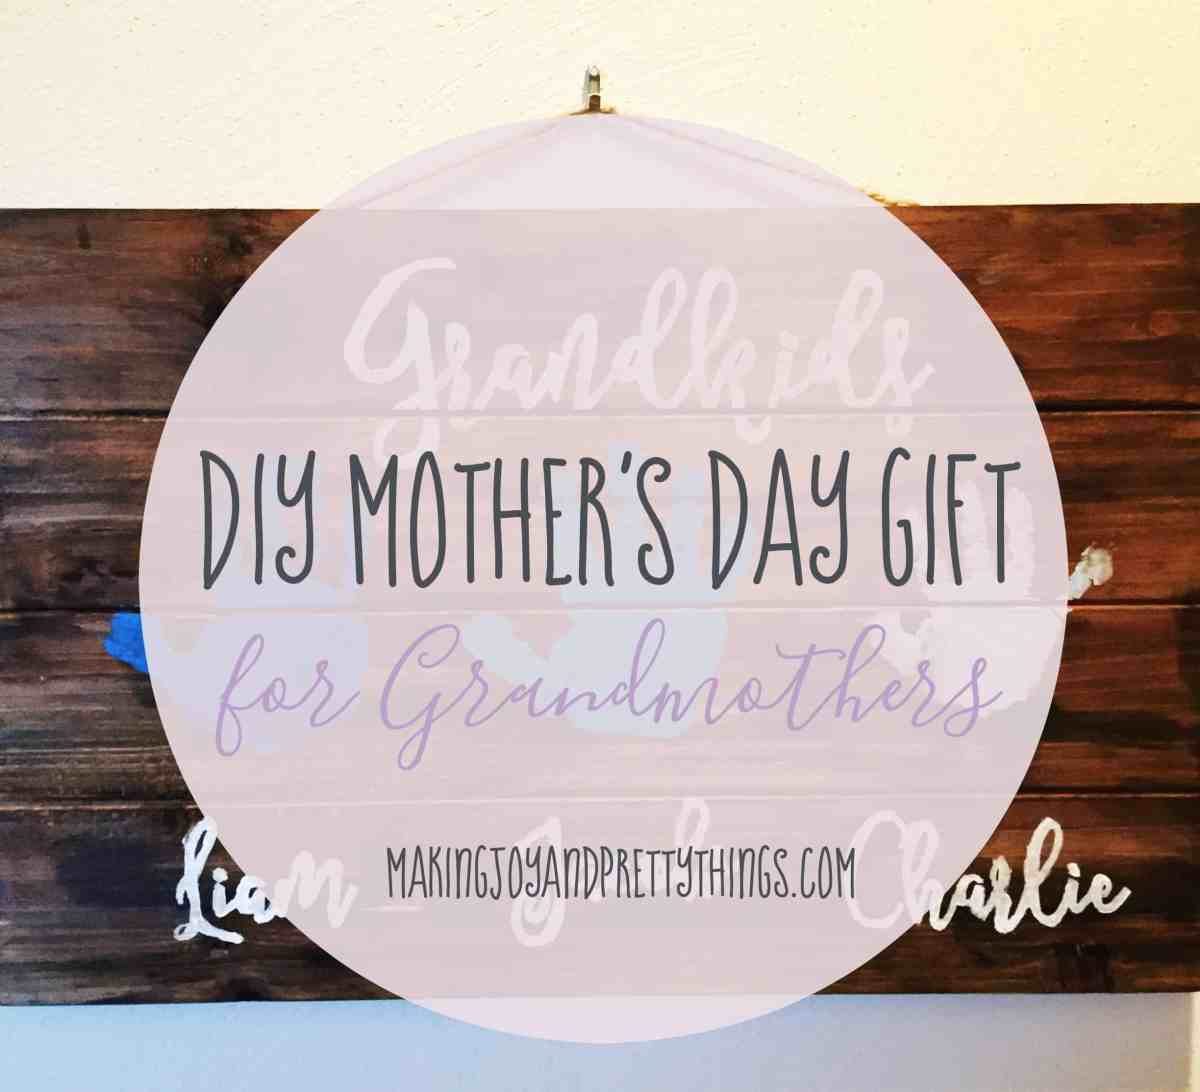 DIY Mother's Day Gift for Grandmothers!